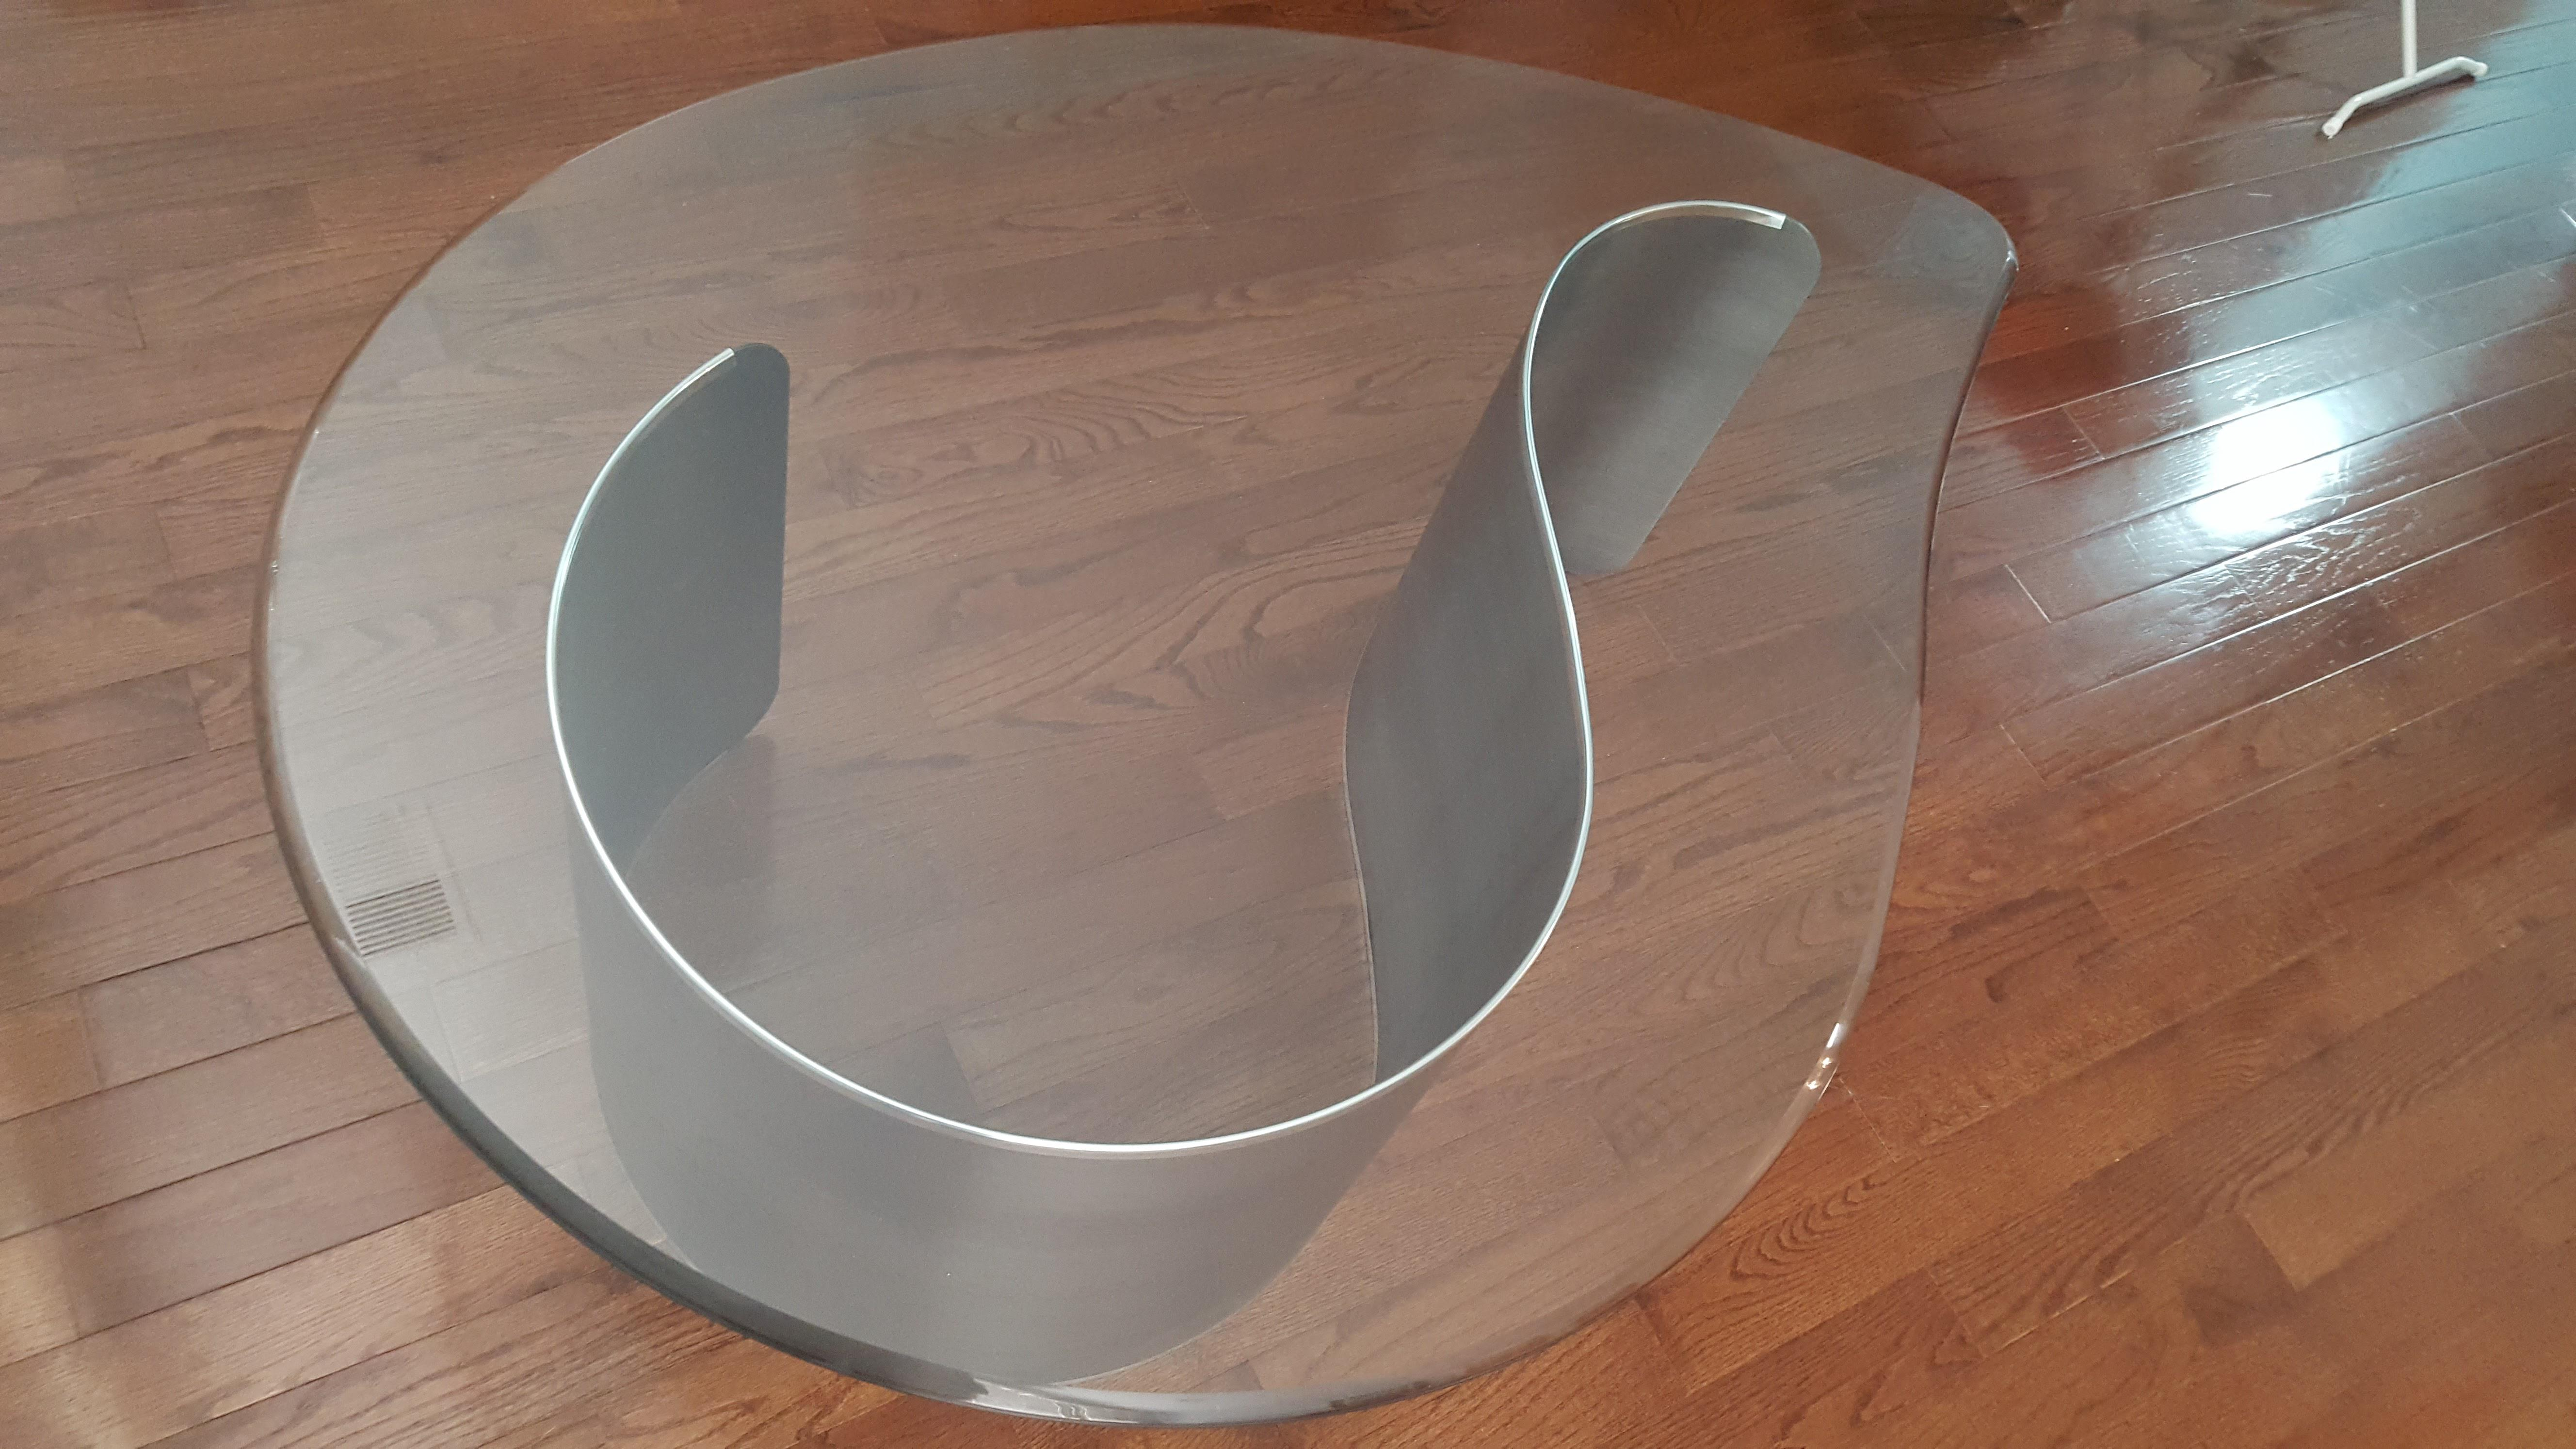 KaganStyle MidCentury Modern Glass Metal Biomorphic Coffee Table